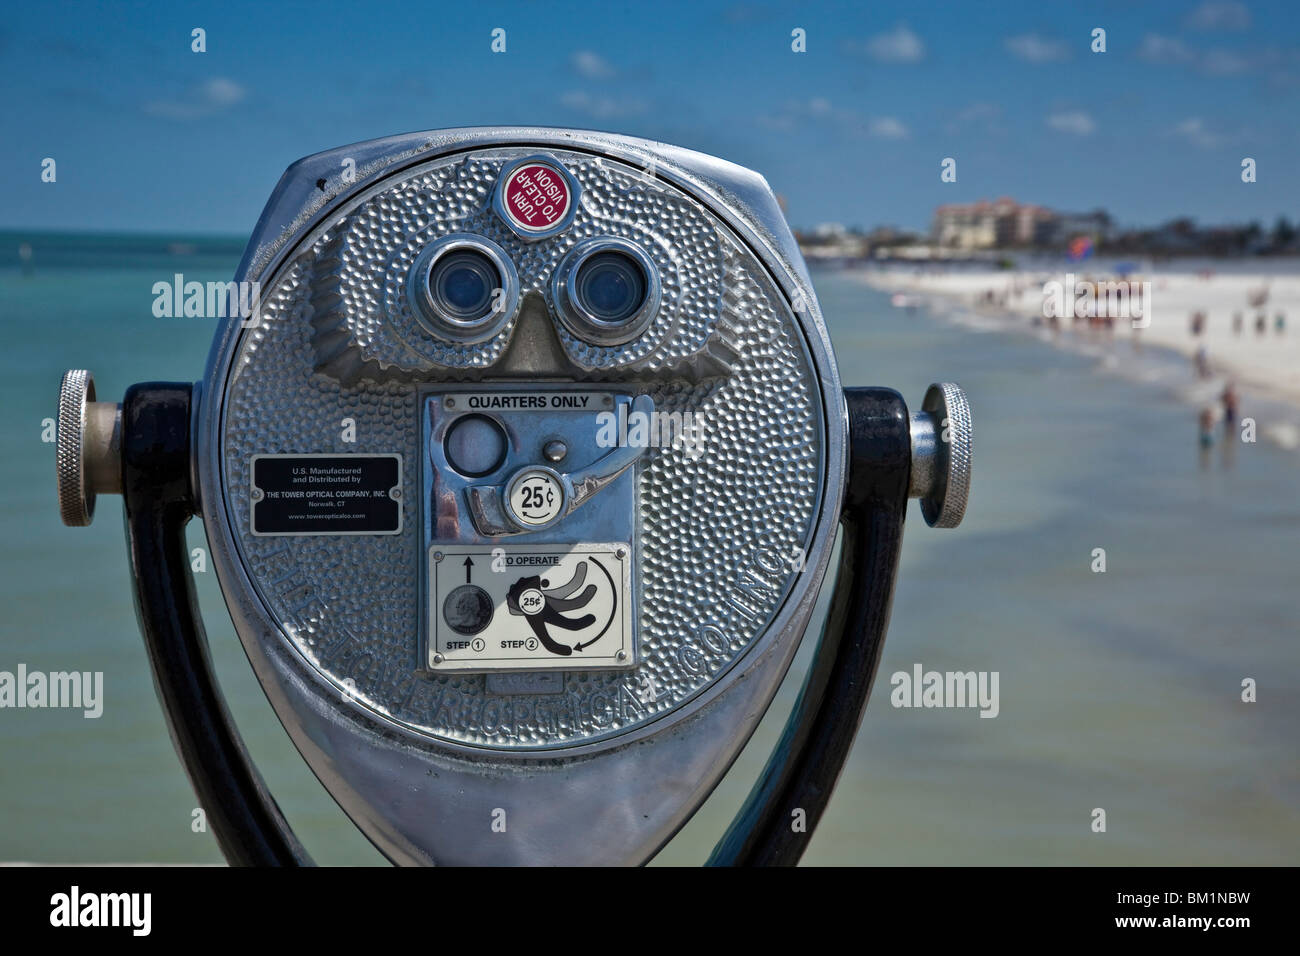 Telescope with view of Clearwater Beach, Florida, USA - Stock Image